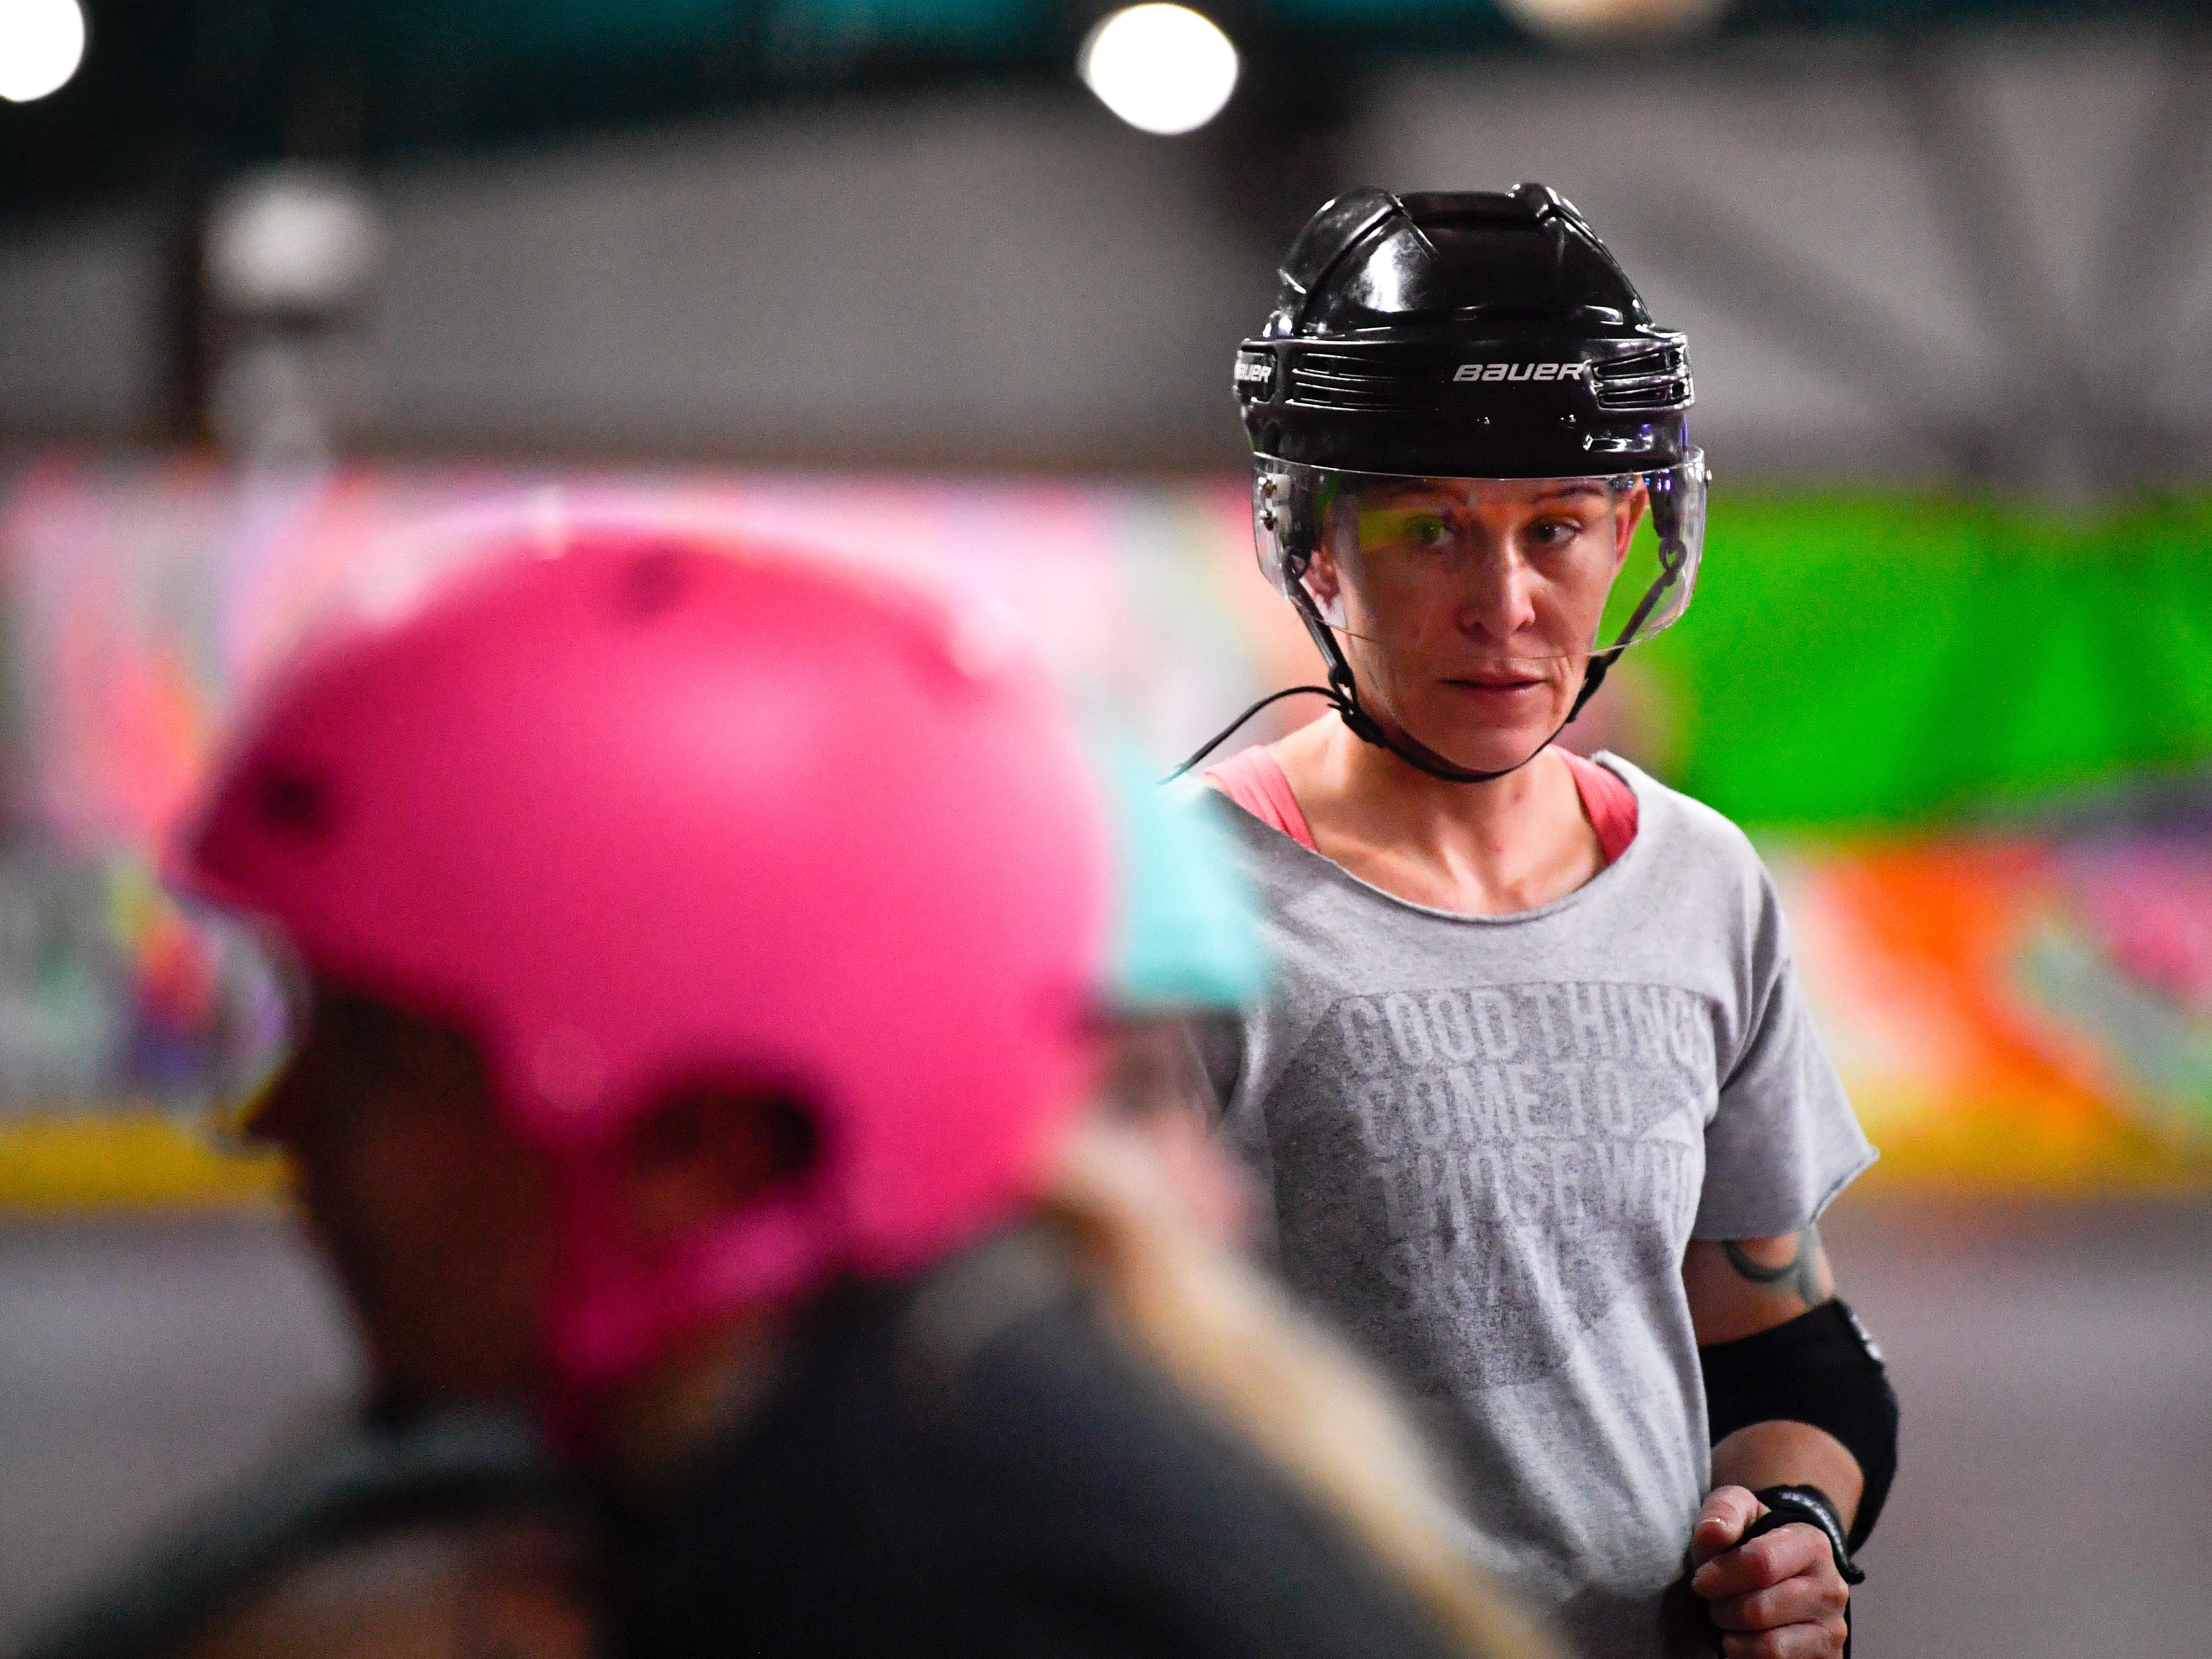 York City Derby Dames player-coach Jamie Moore observes two teammates during practice, Thursday, October 18, 2018.